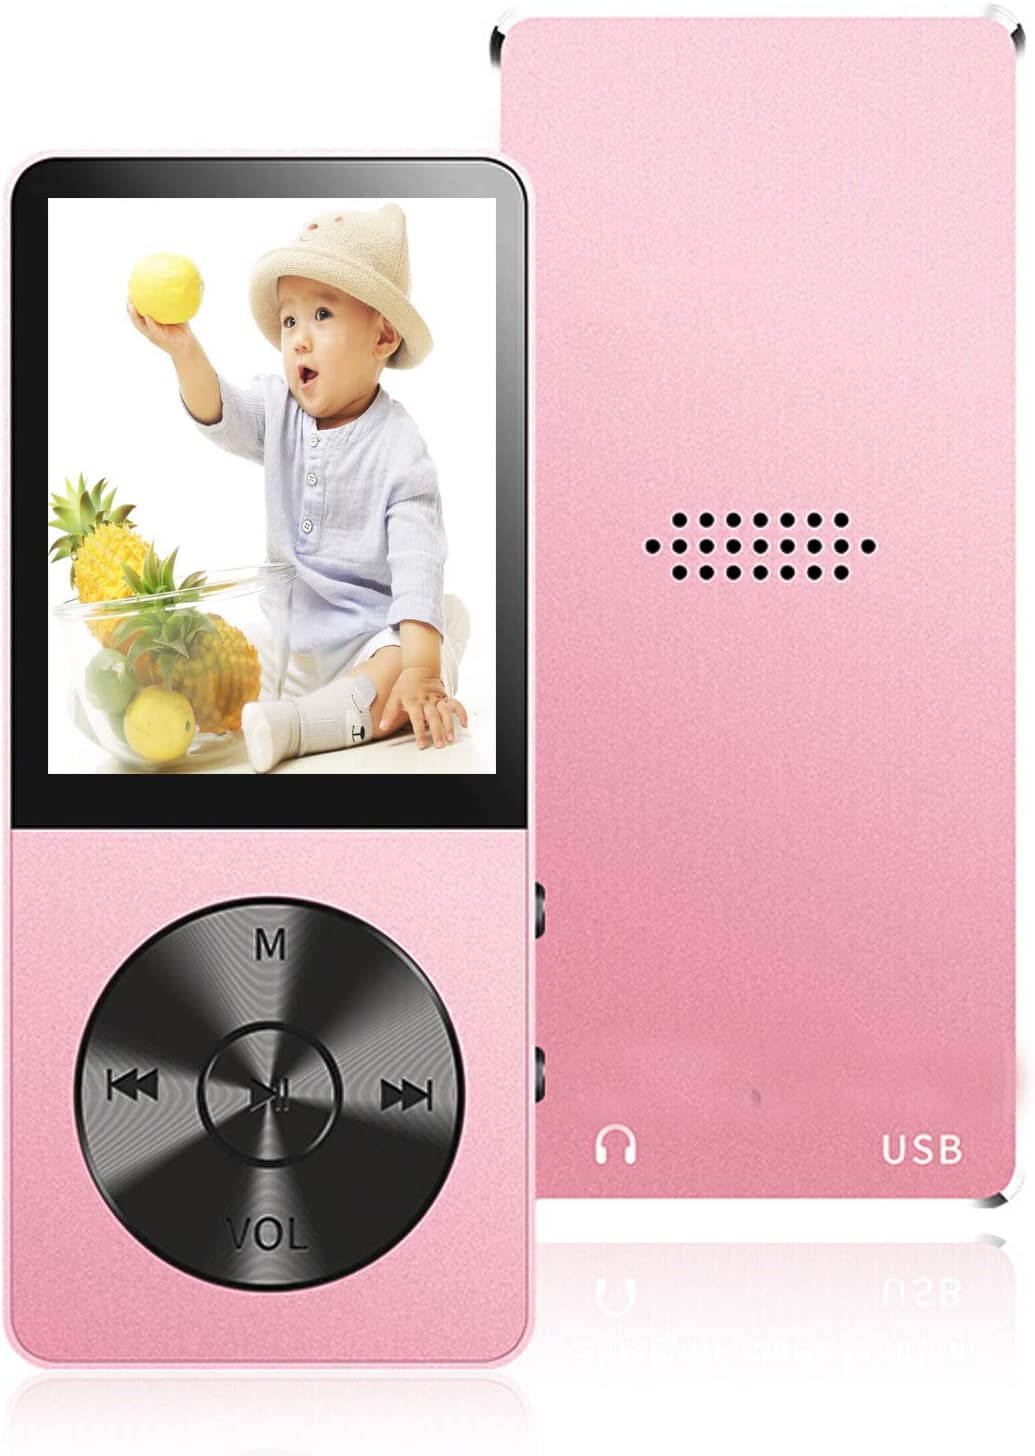 Voice Recorder FM Radio Supports up to 64GB Portable Music Player with Light Metal Video Play E-Book Reader MP3 Player Build-in Speaker 16GB MP3 Players with Hi-Fi Lossless Sound